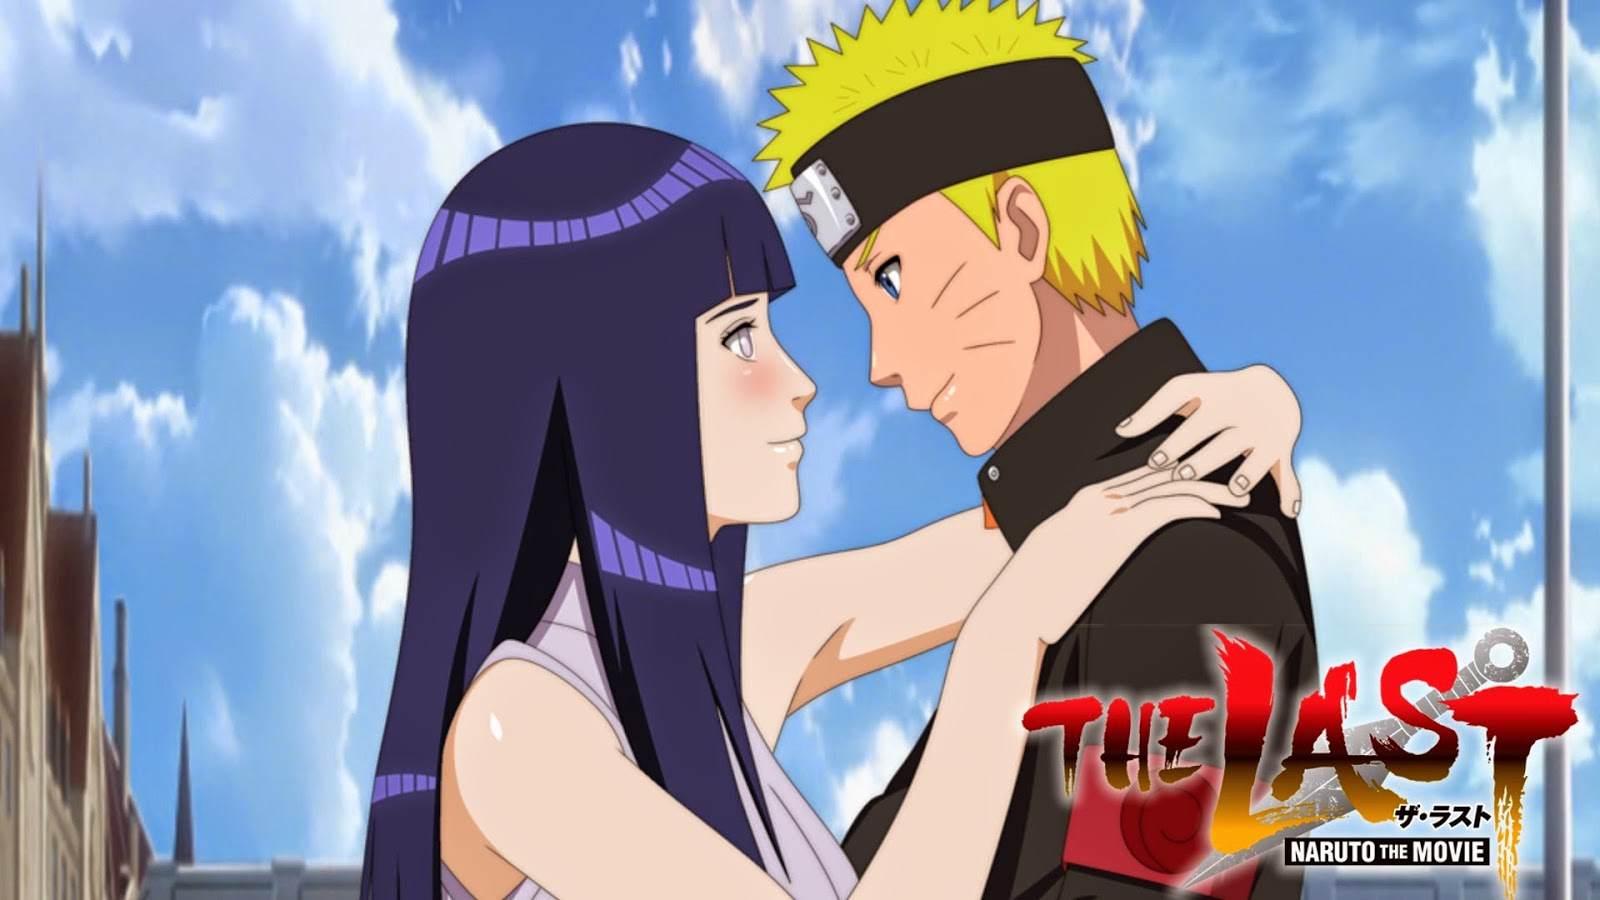 The Last Naruto The Movie OST download